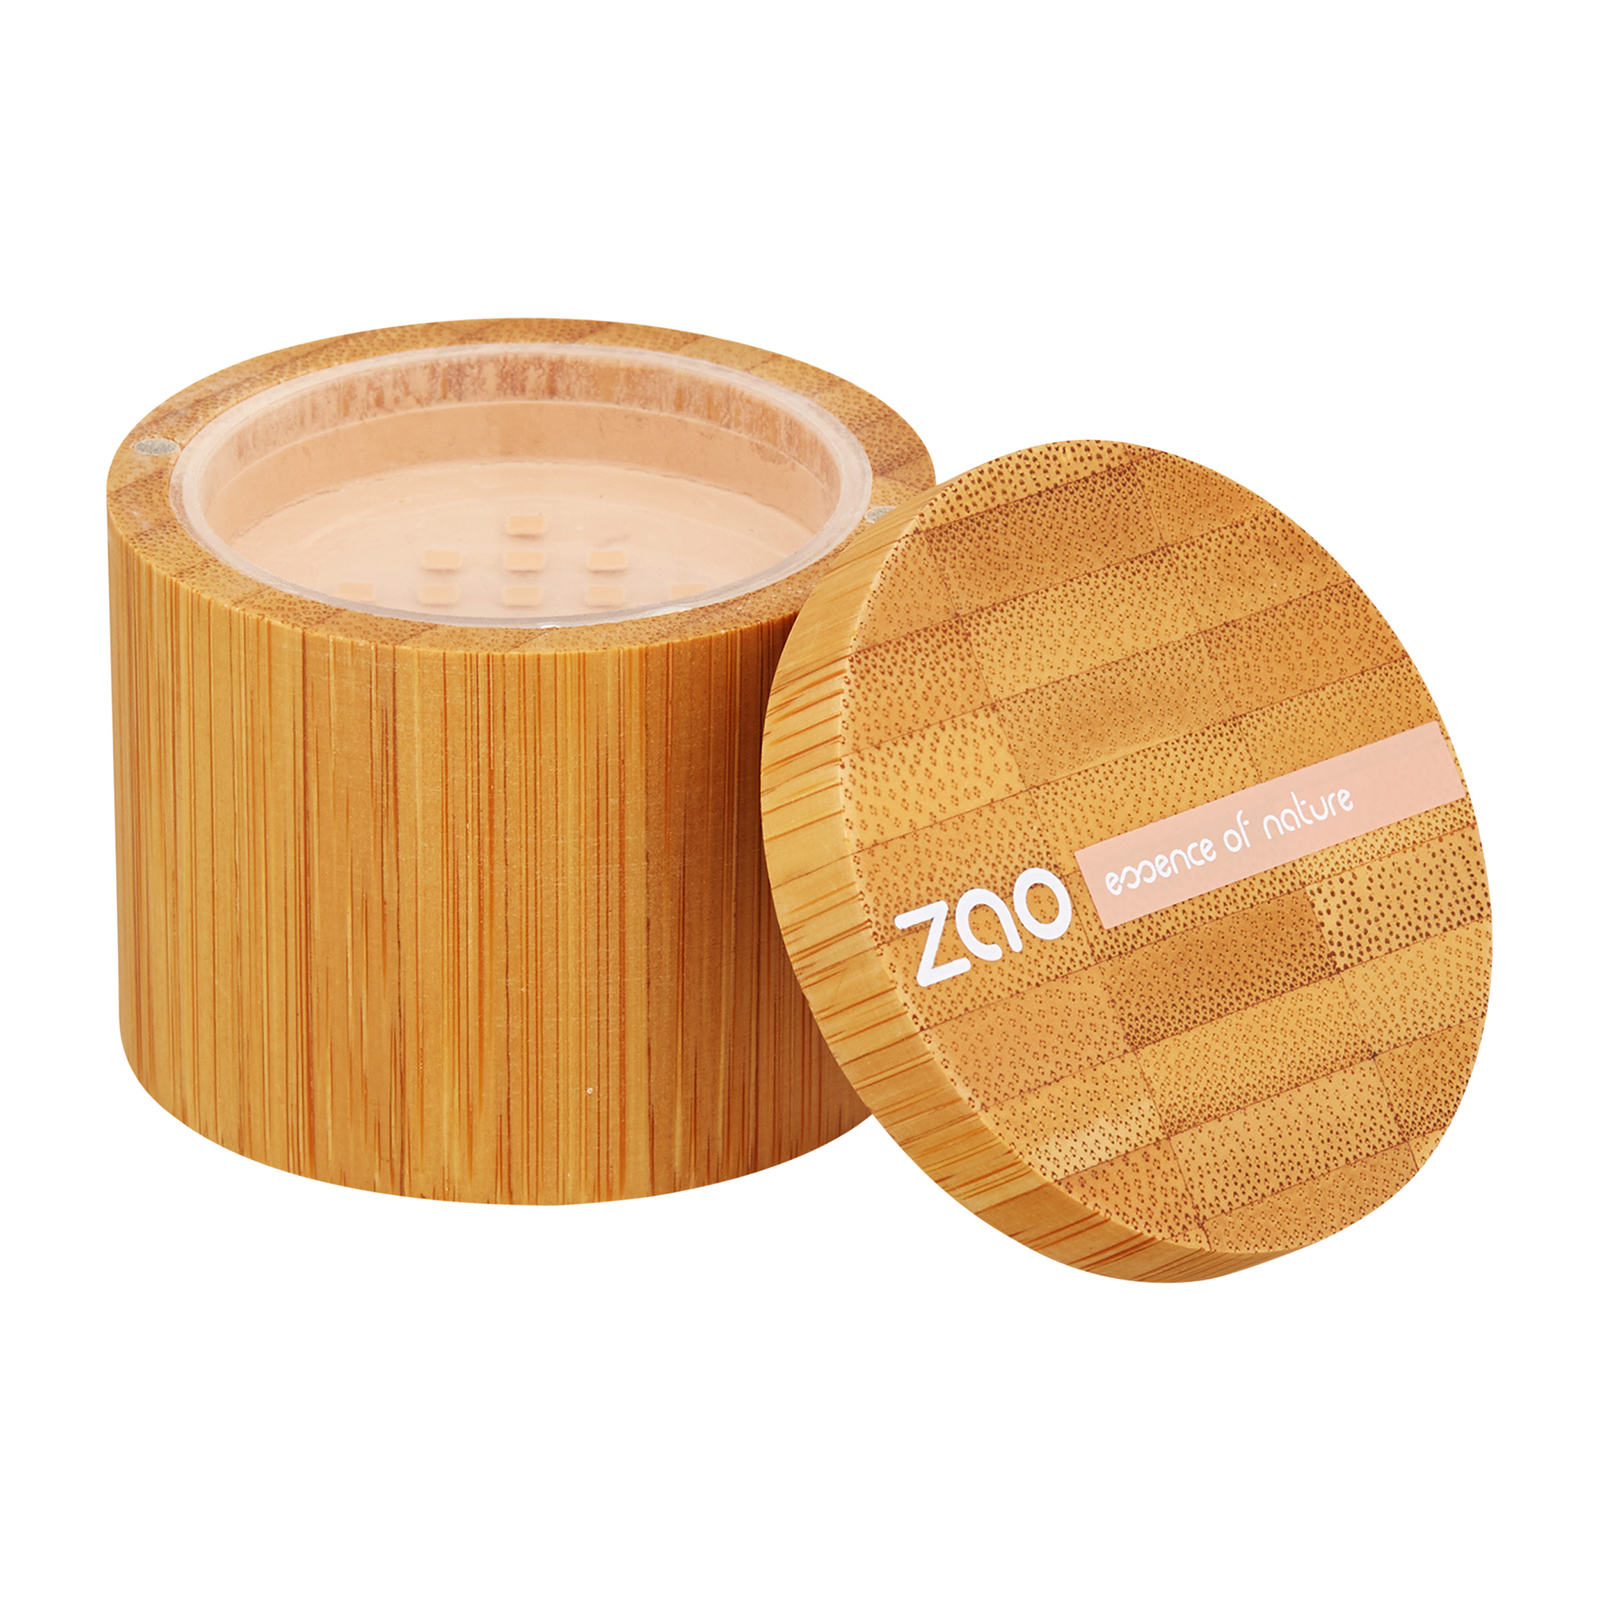 ZAO  Mineral Silk Mineral Powder Foundation 501 Clear Beige, 0.53oz, 15g